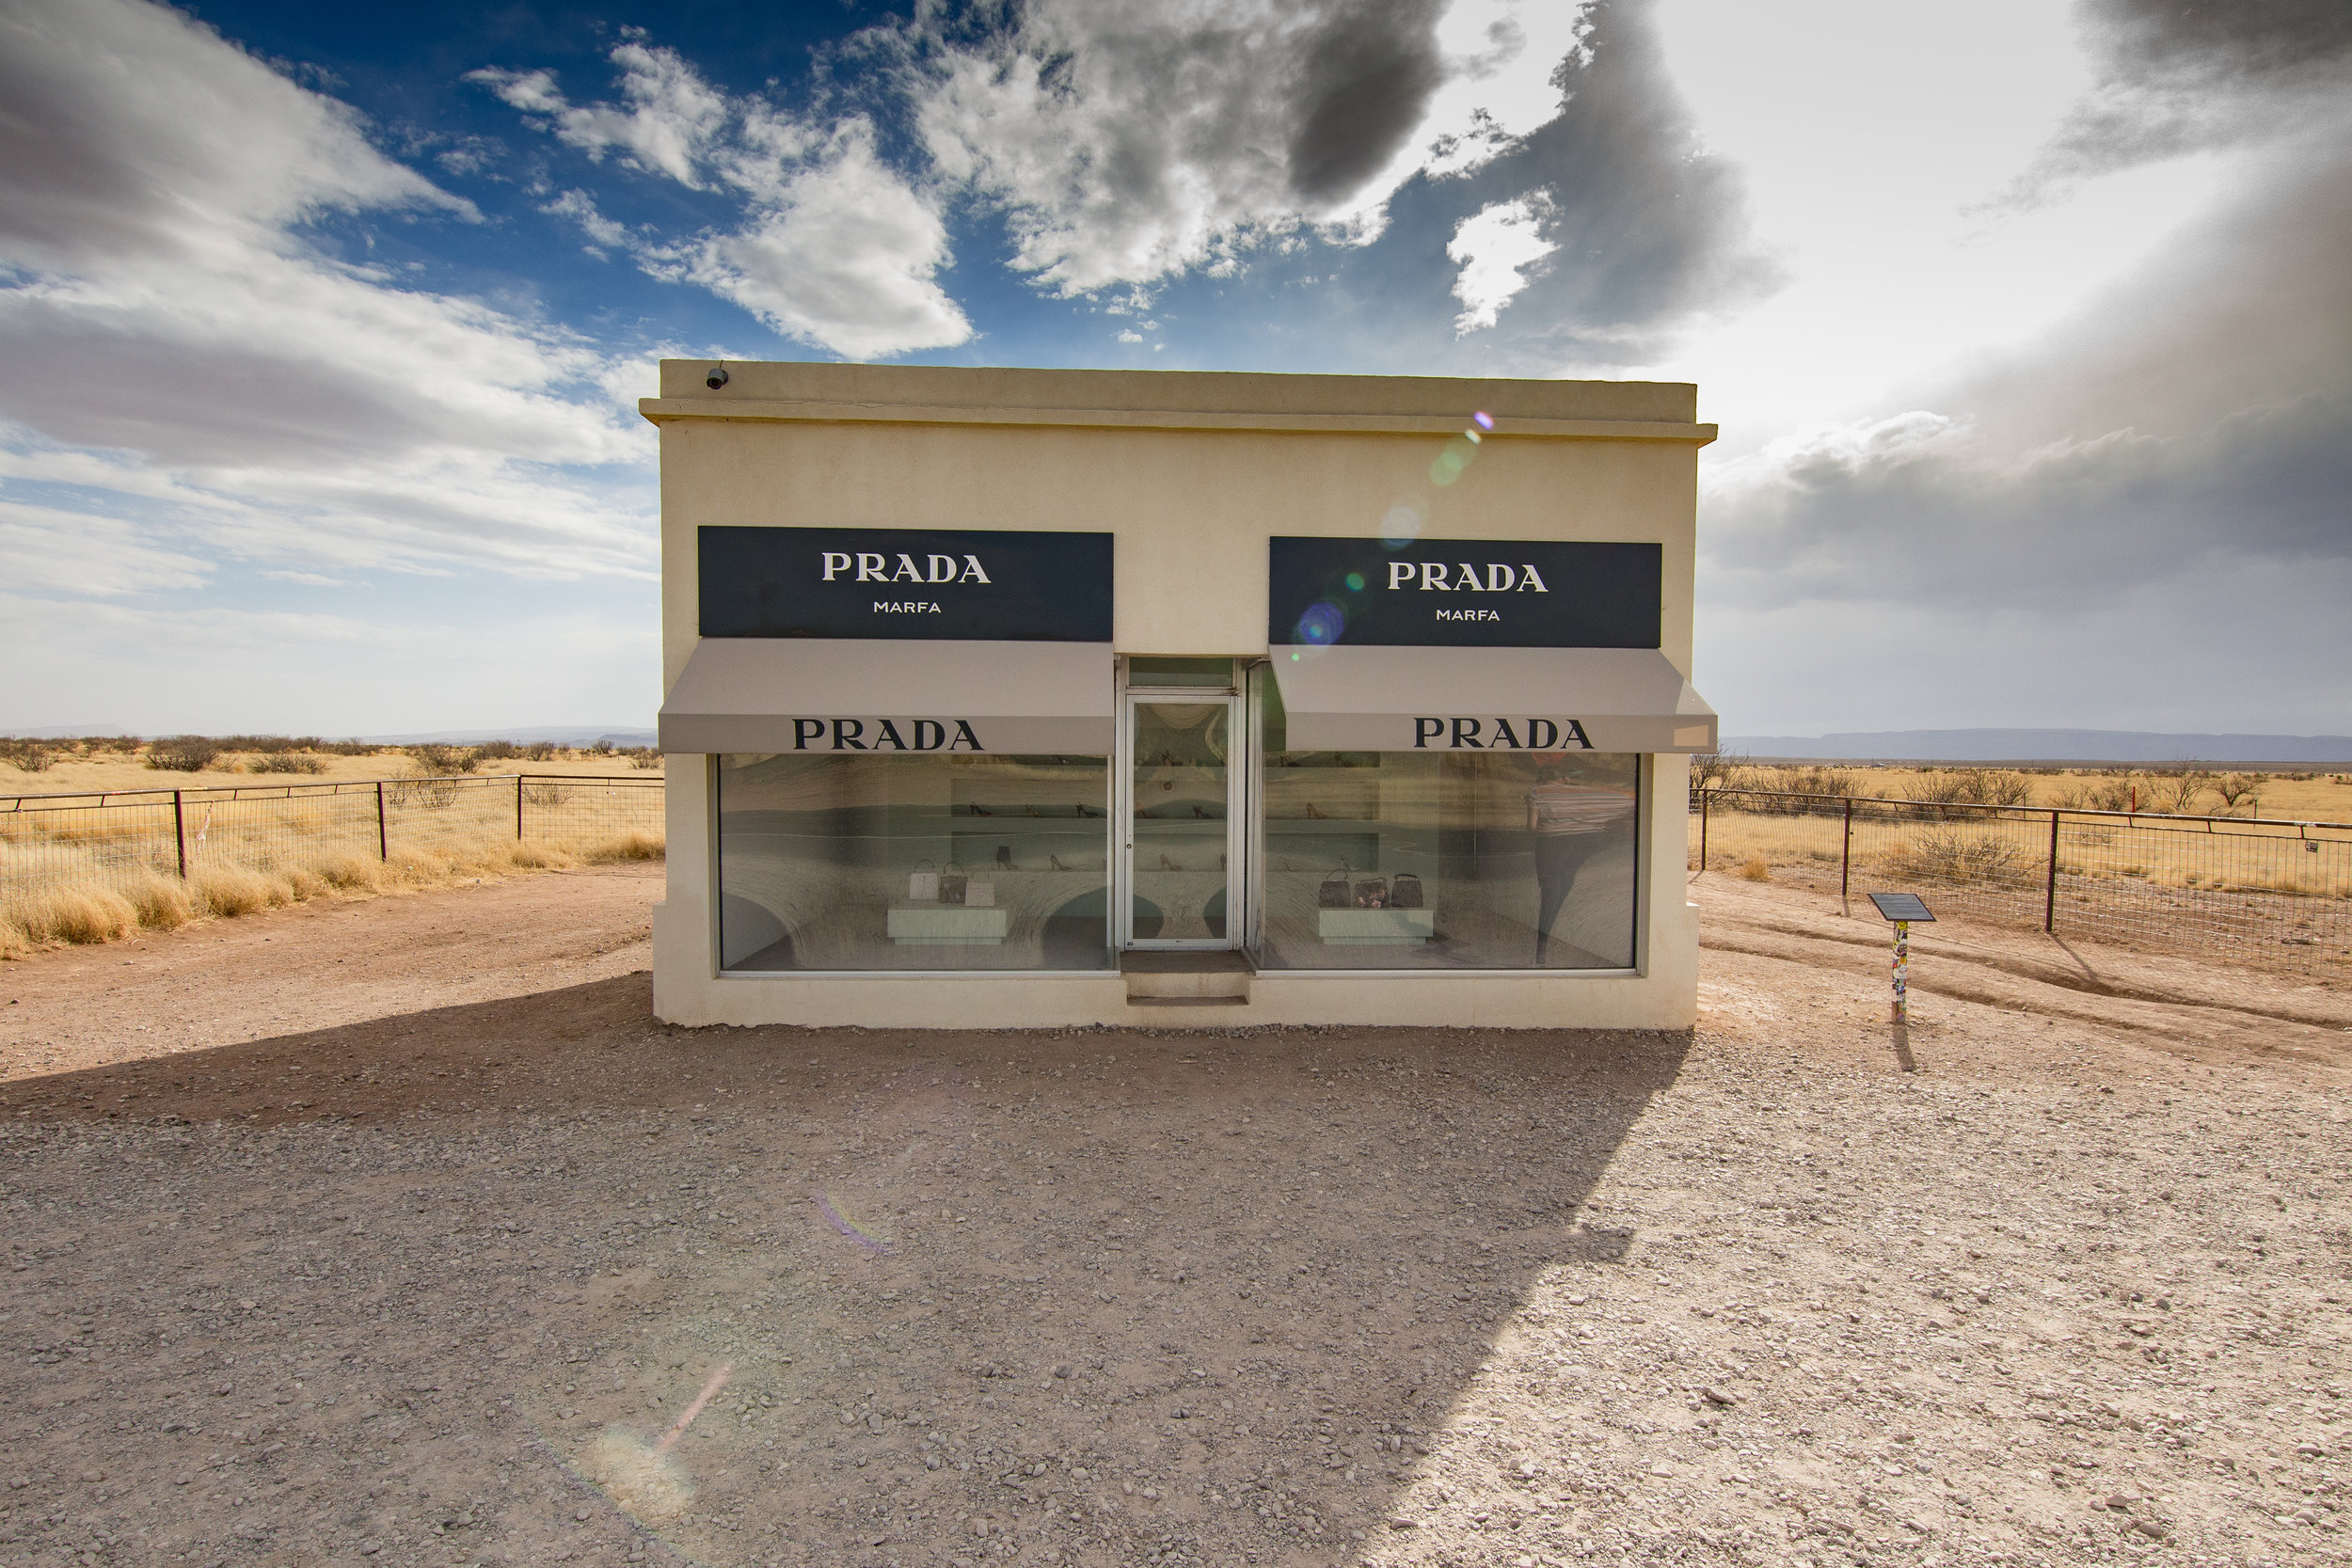 Prada Marfa. A permanent installation by Elmgreen and Dragset.